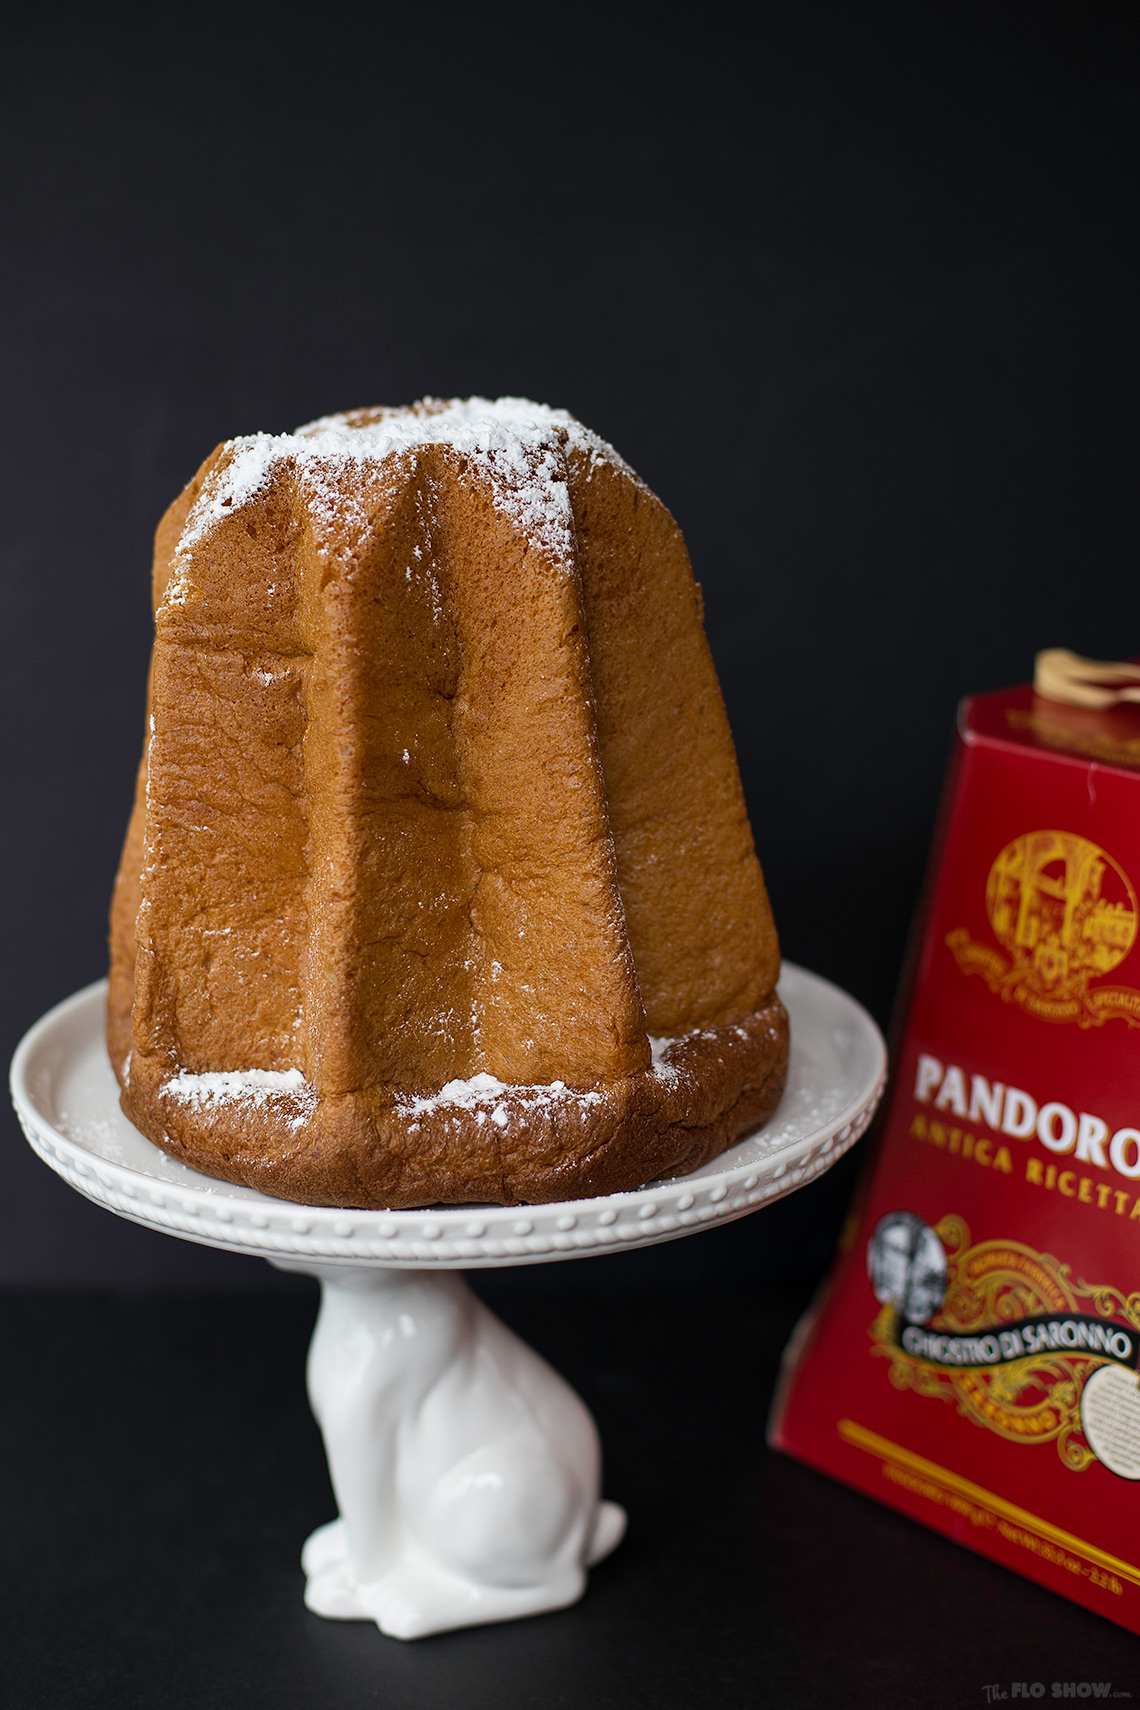 Pandoro antica ricetta by Chiostro di Saronno - a delicious Christmas specialty from Italy on www.TheFloShow.com